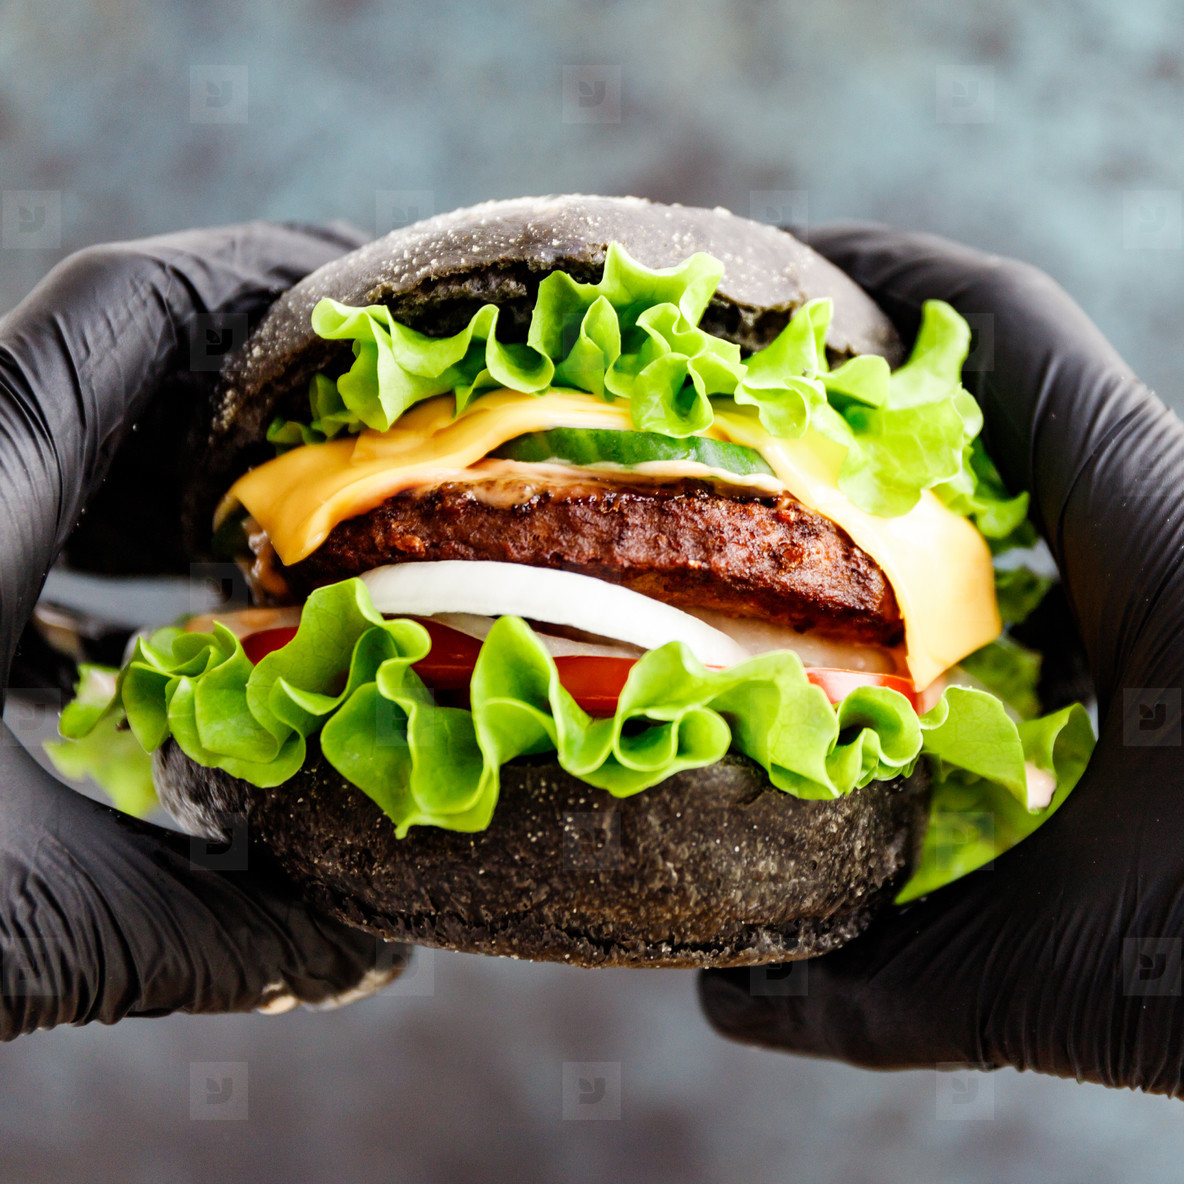 Hands in black gloves hold a big black burger with marble beef patty  cheese and fresh vegetables  Close up view